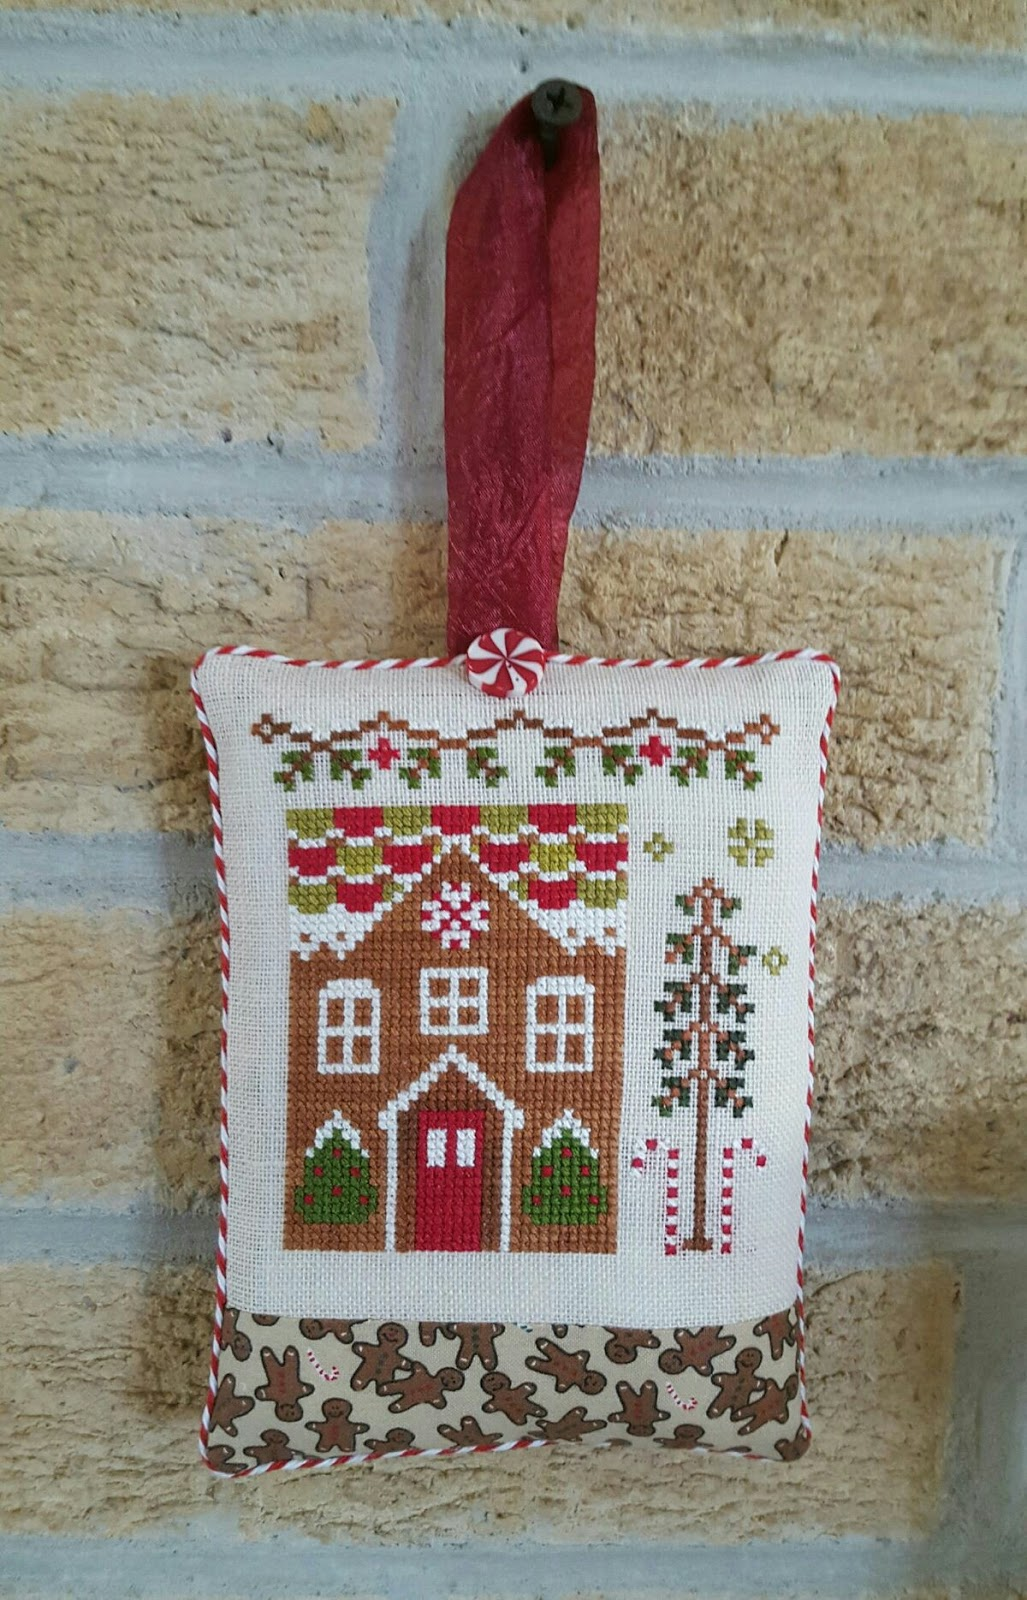 Cross Stitch Inspiration By Cindy DeRosa: Spring is almost